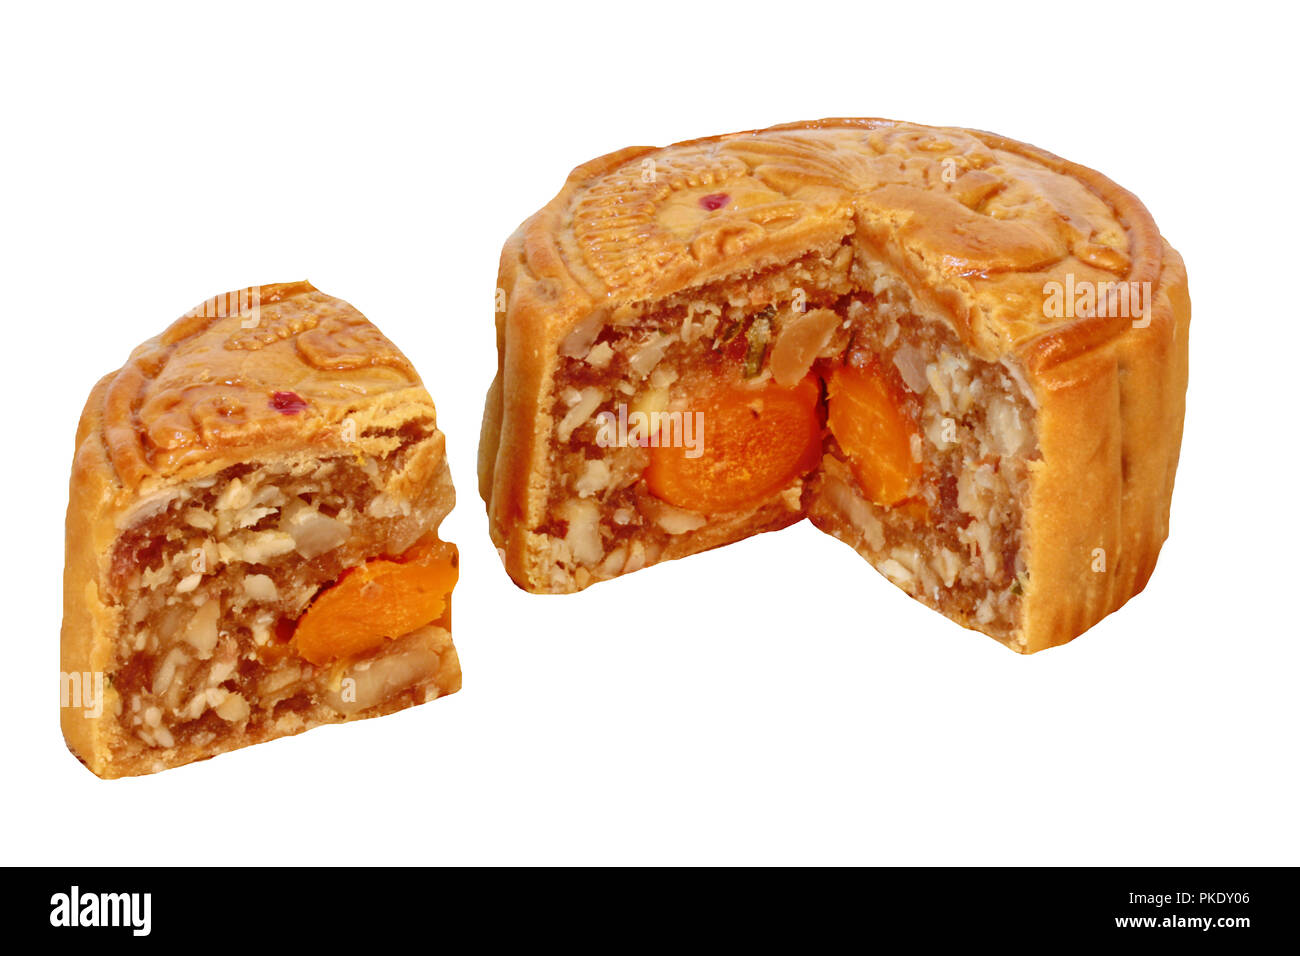 Isoleted of Mooncake filling five seed and double salt eggs on white background. - Stock Image